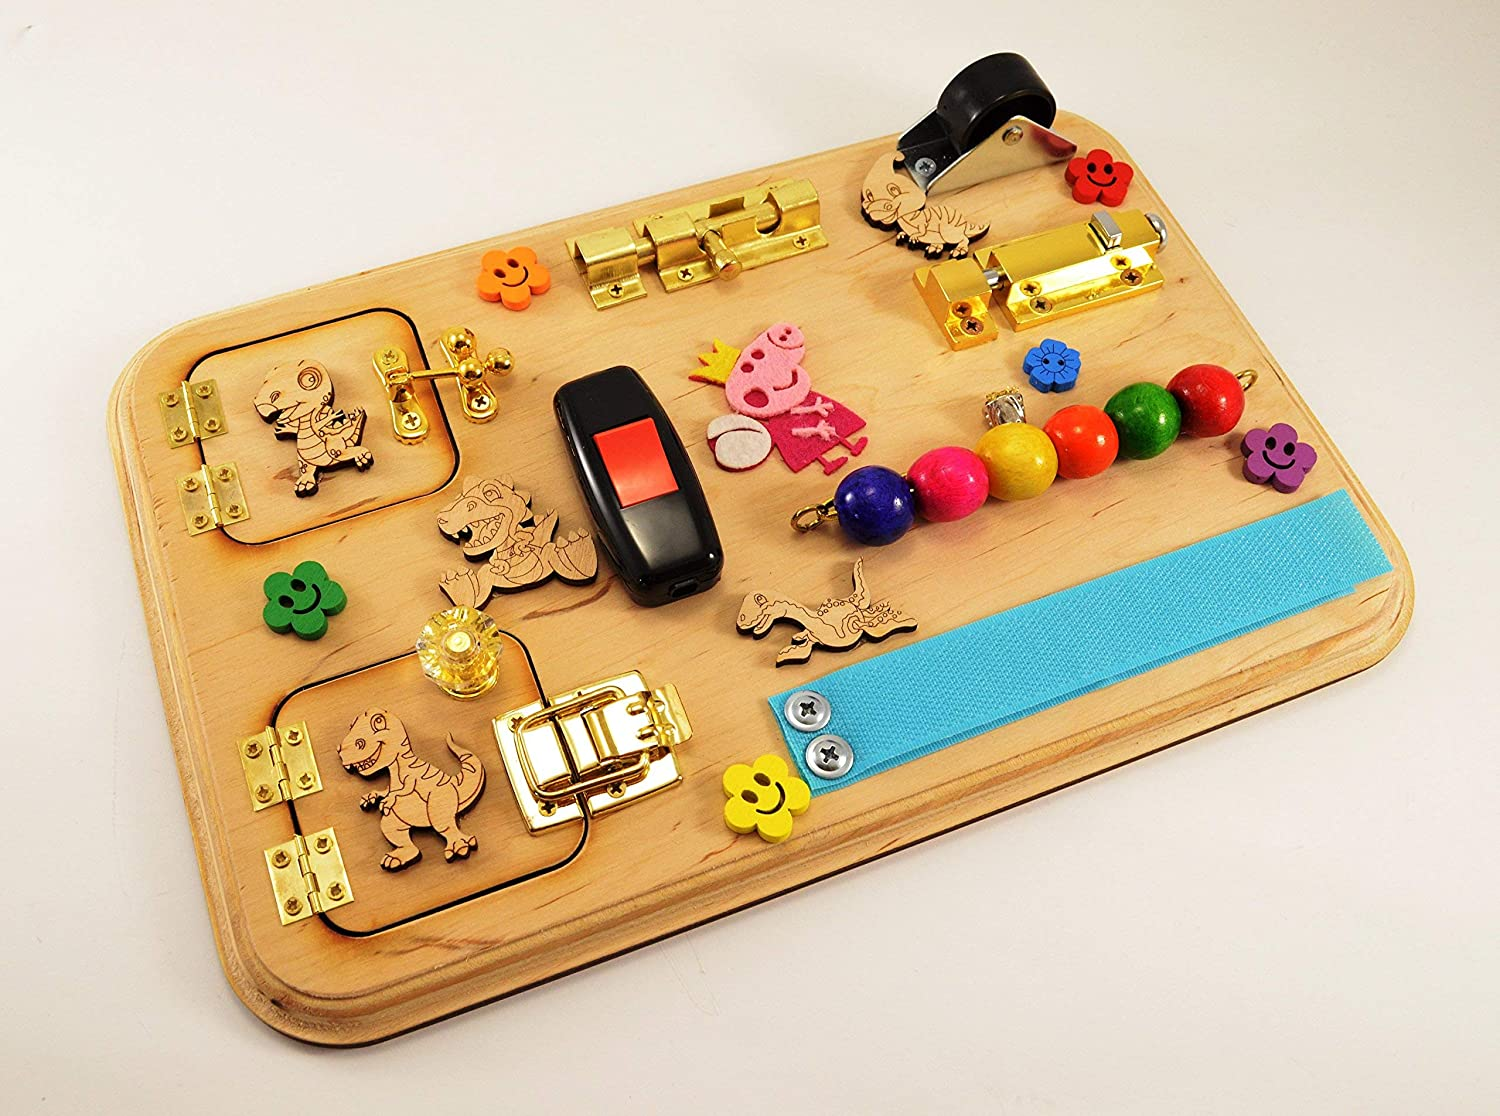 Travel busy board Mini sensory board Busy board for toddler Activity board Baby gifts Montessori toys Christmas in july July 4th Gift 1st